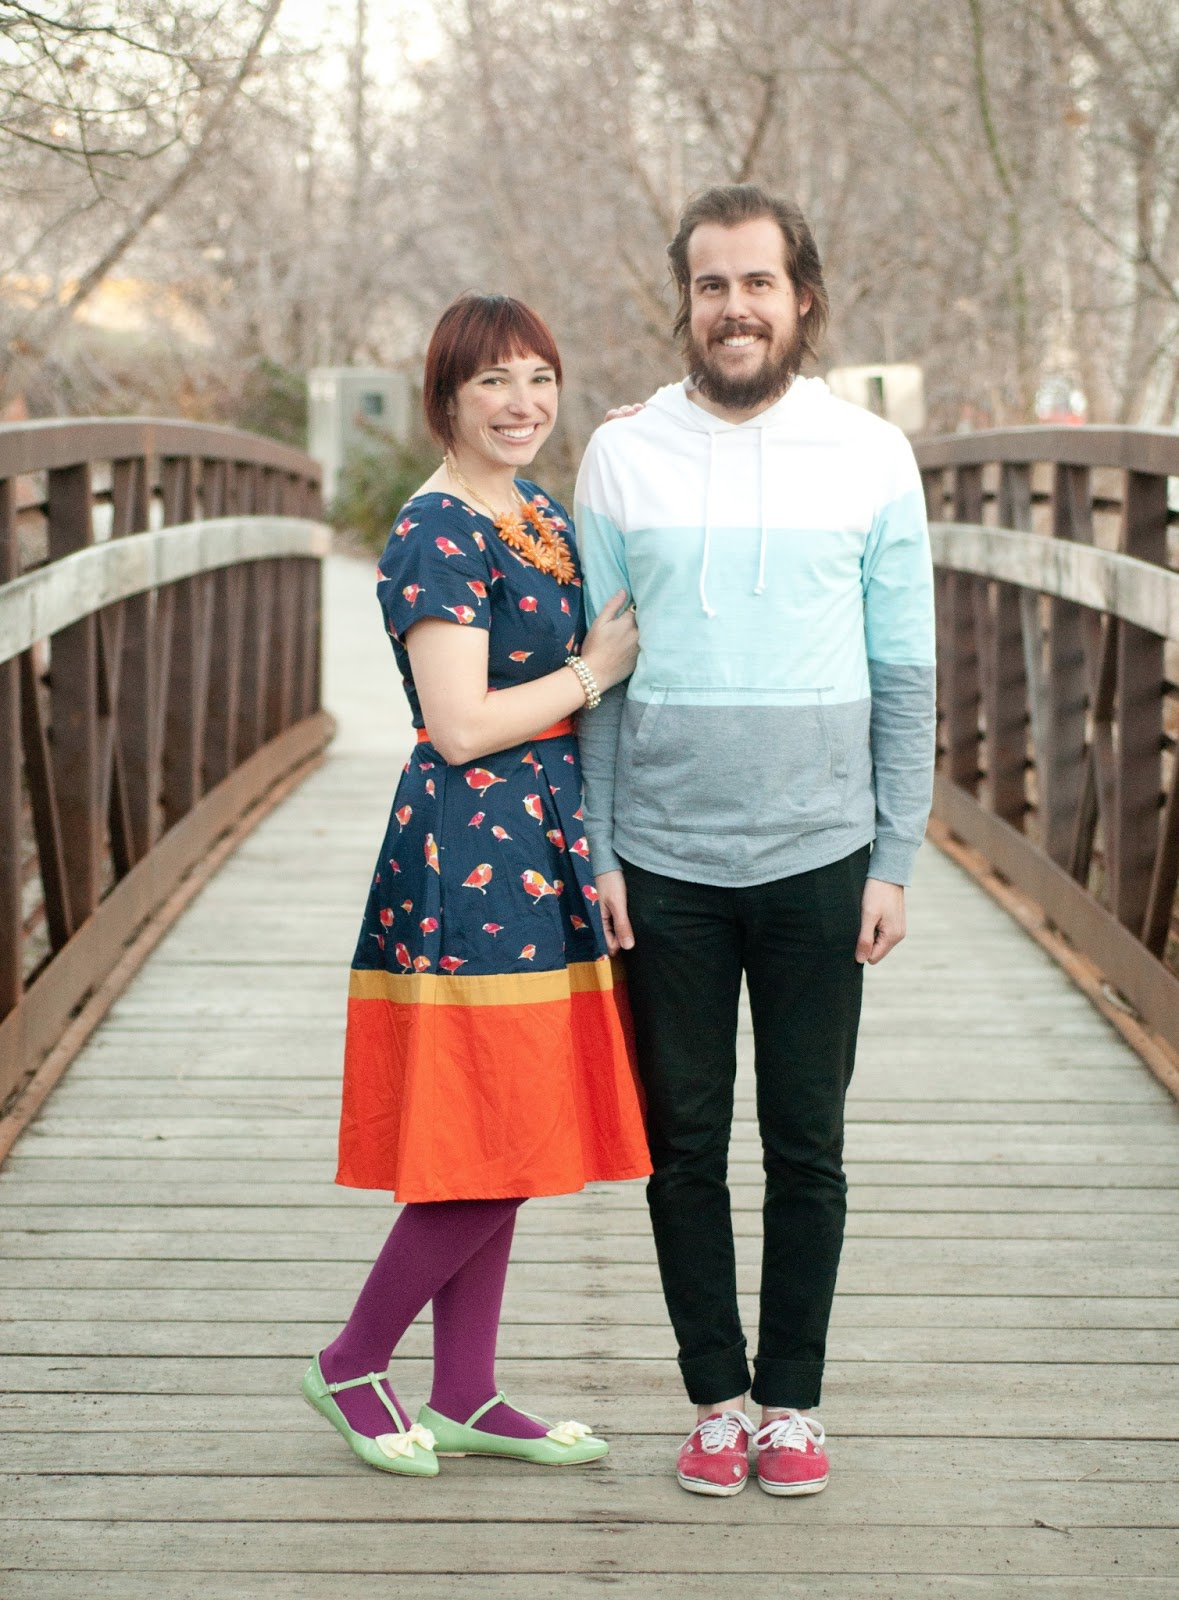 yellow bow, hue tights, tights, fashion blogger, mens wear, womens wear, style, fashion, orange, birds, navy, mustard yellow, target, target sweater, anthropologie, jcrew, pearls, bow shoes, bows, t strap shoes, eshakti, vans, red vans, levis